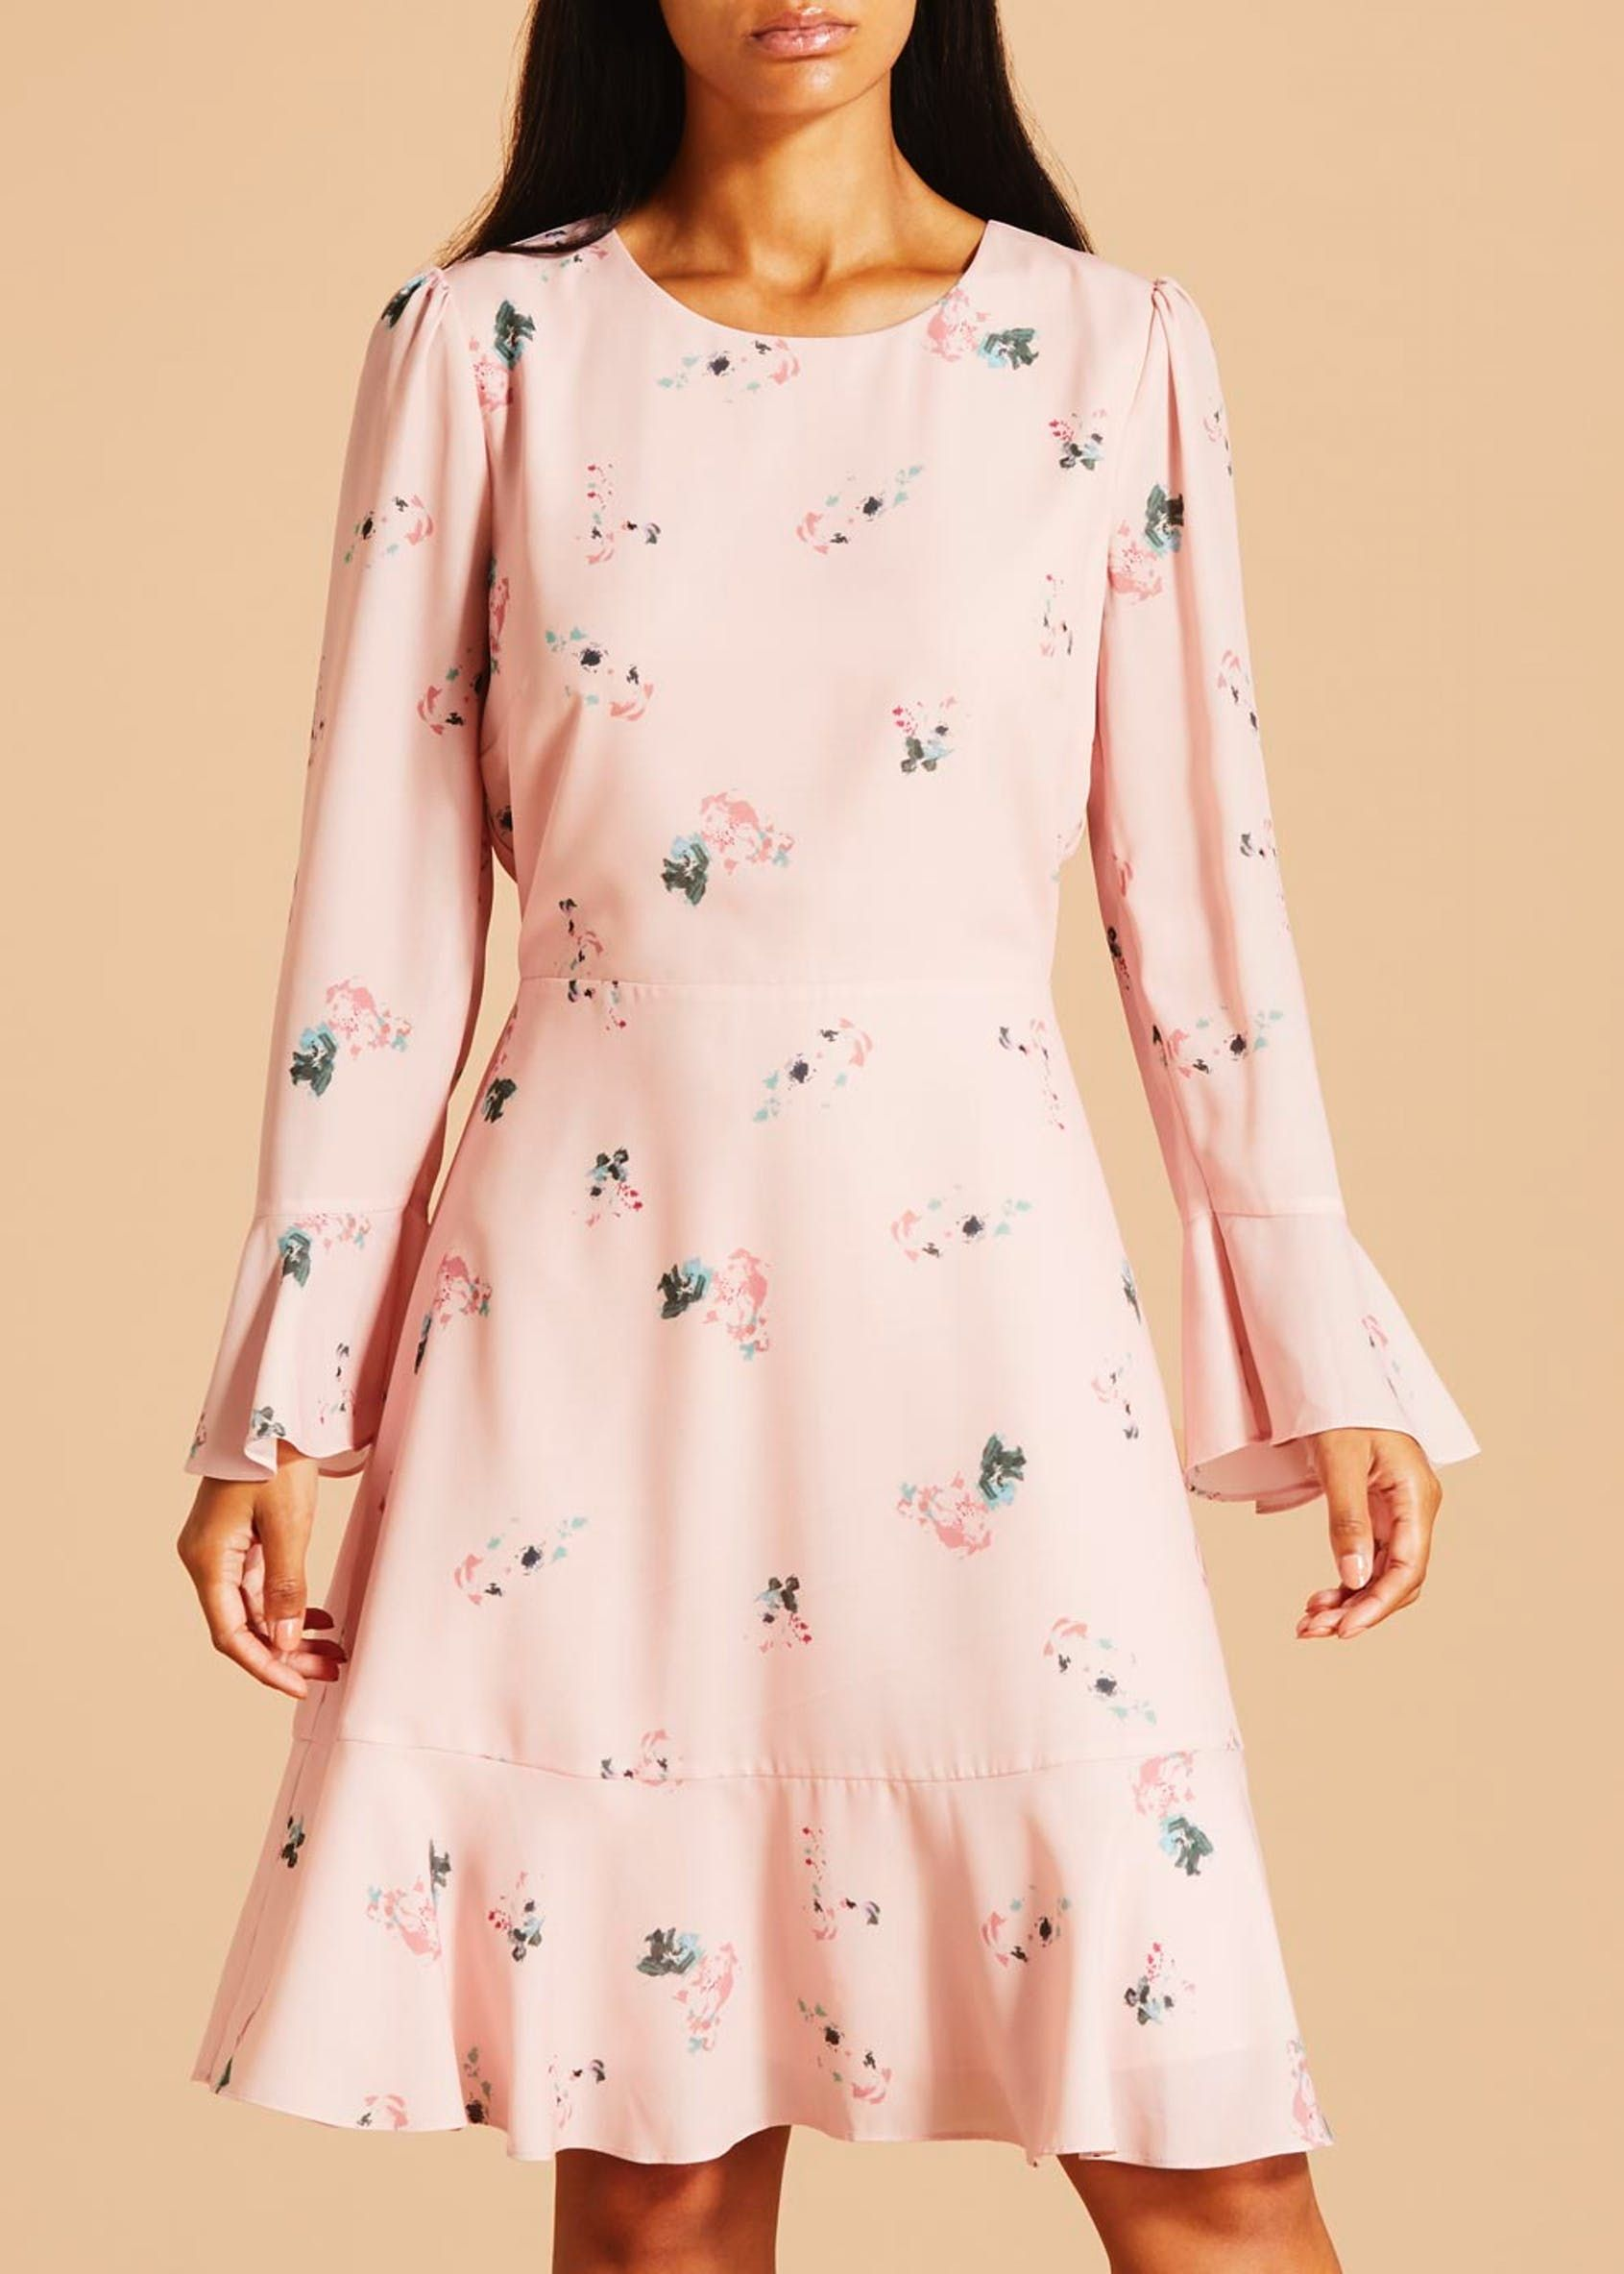 4c7d3386773349 FWM Floral Long Sleeve Dress - Pink | what to wear? | Long sleeve ...